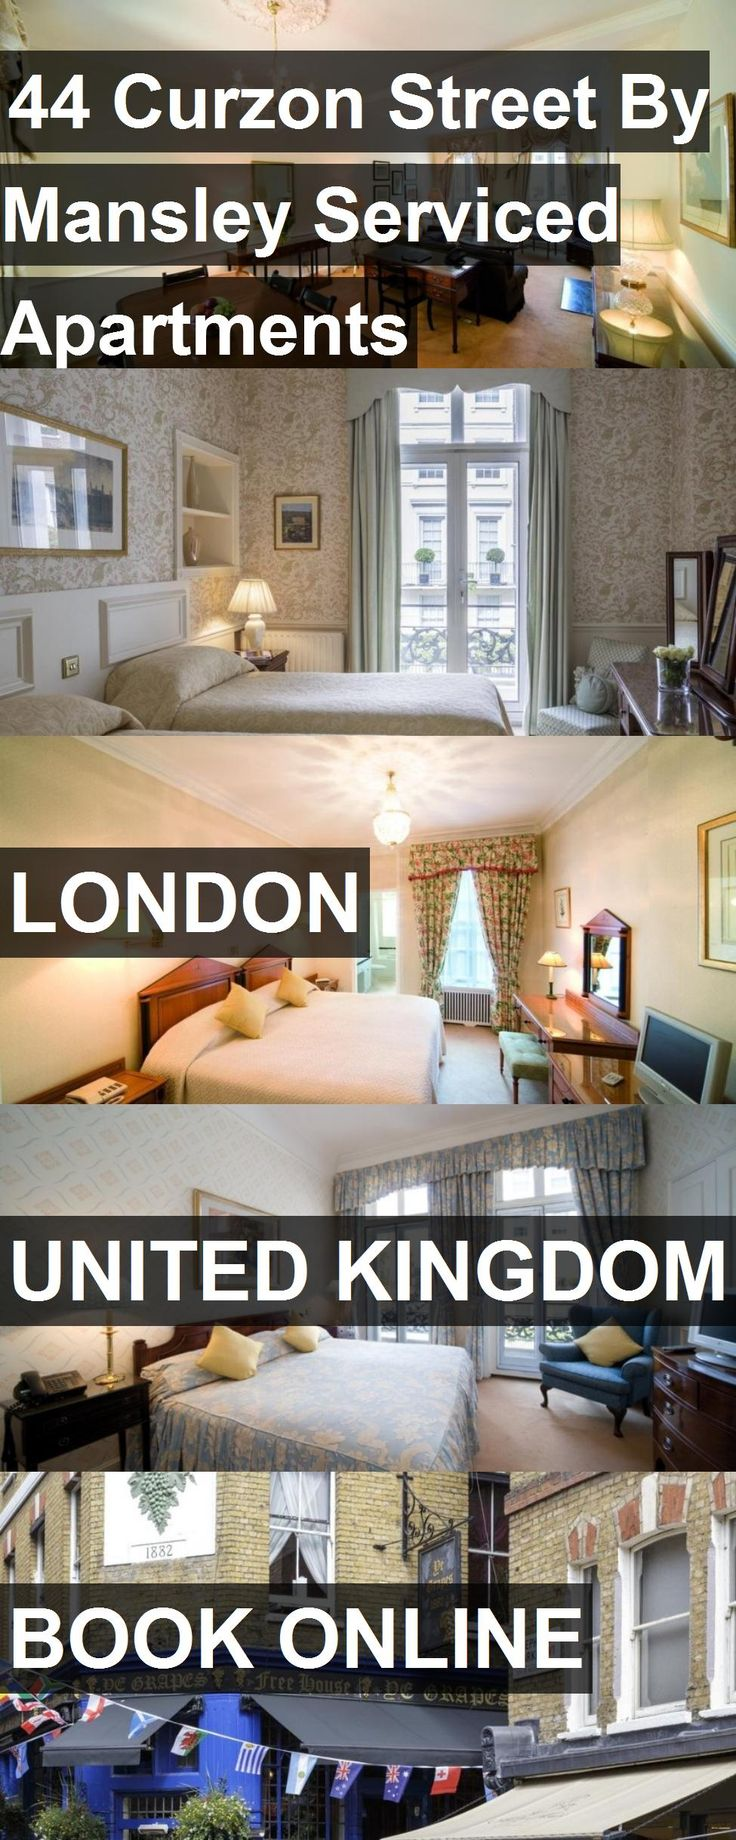 Hotel 44 Curzon Street By Mansley Serviced Apartments in London, United Kingdom. For more information, photos, reviews and best prices please follow the link. #UnitedKingdom #London #44CurzonStreetByMansleyServicedApartments #hotel #travel #vacation